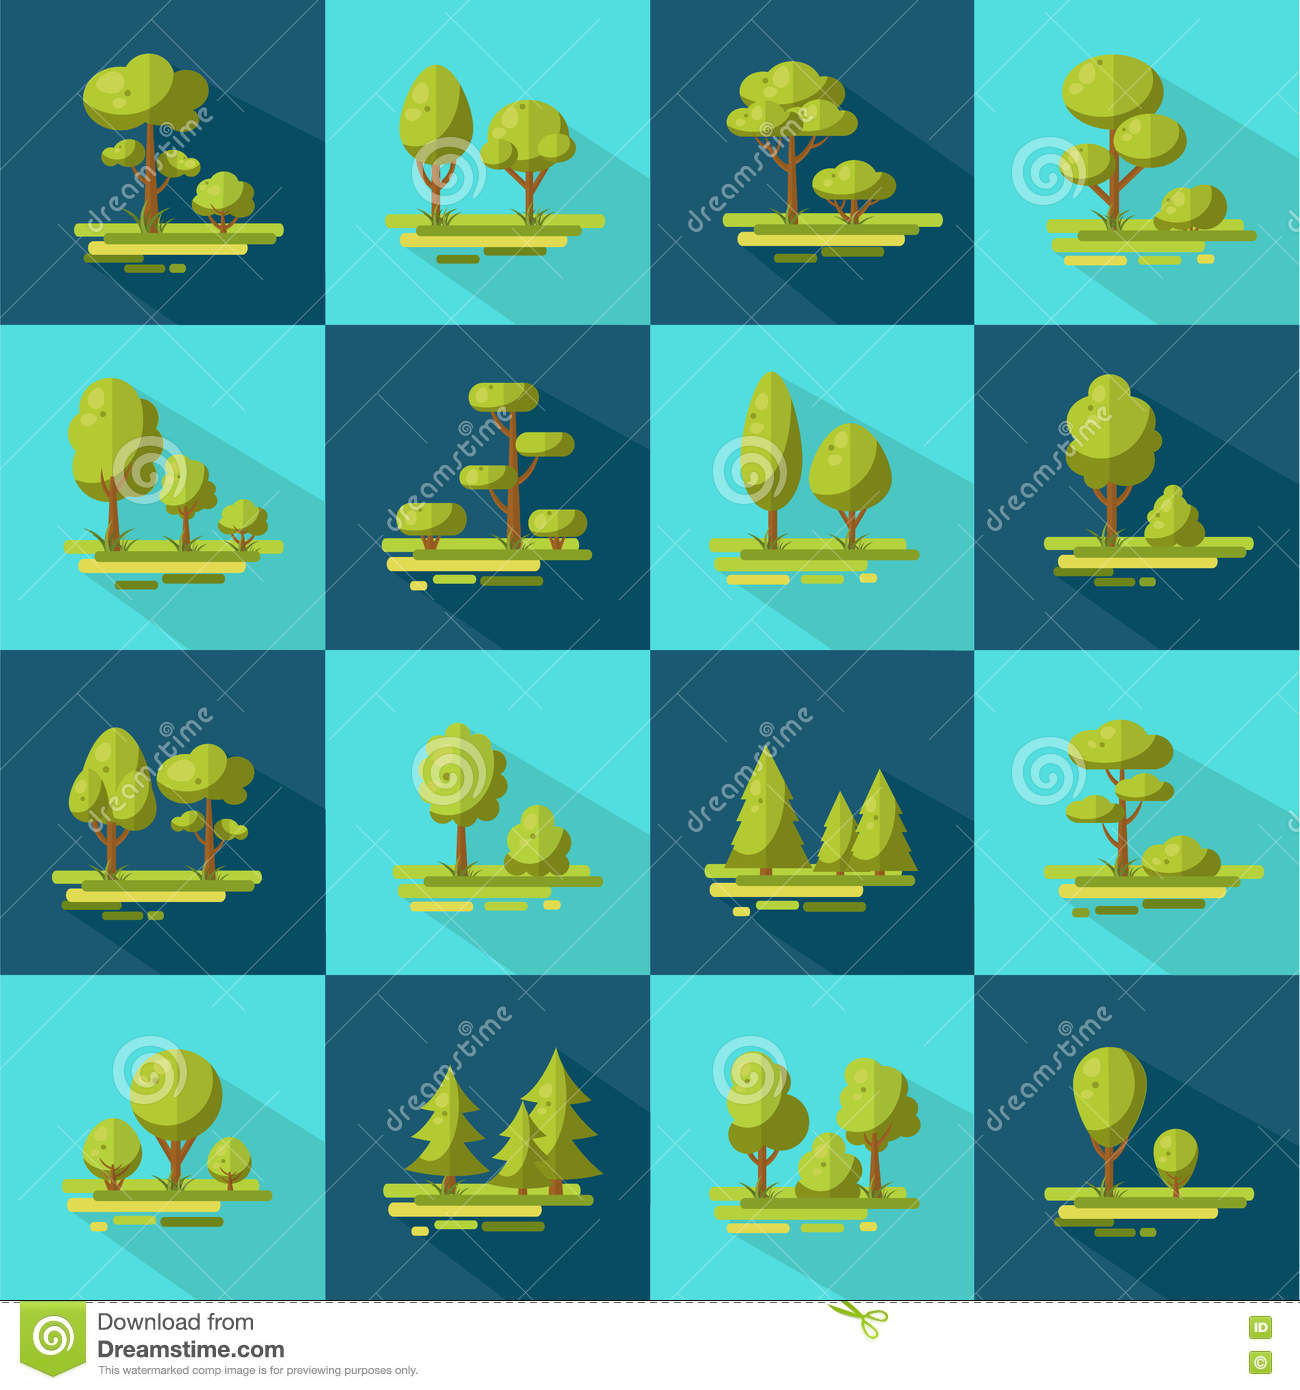 Forest Elements Flat Icons Set